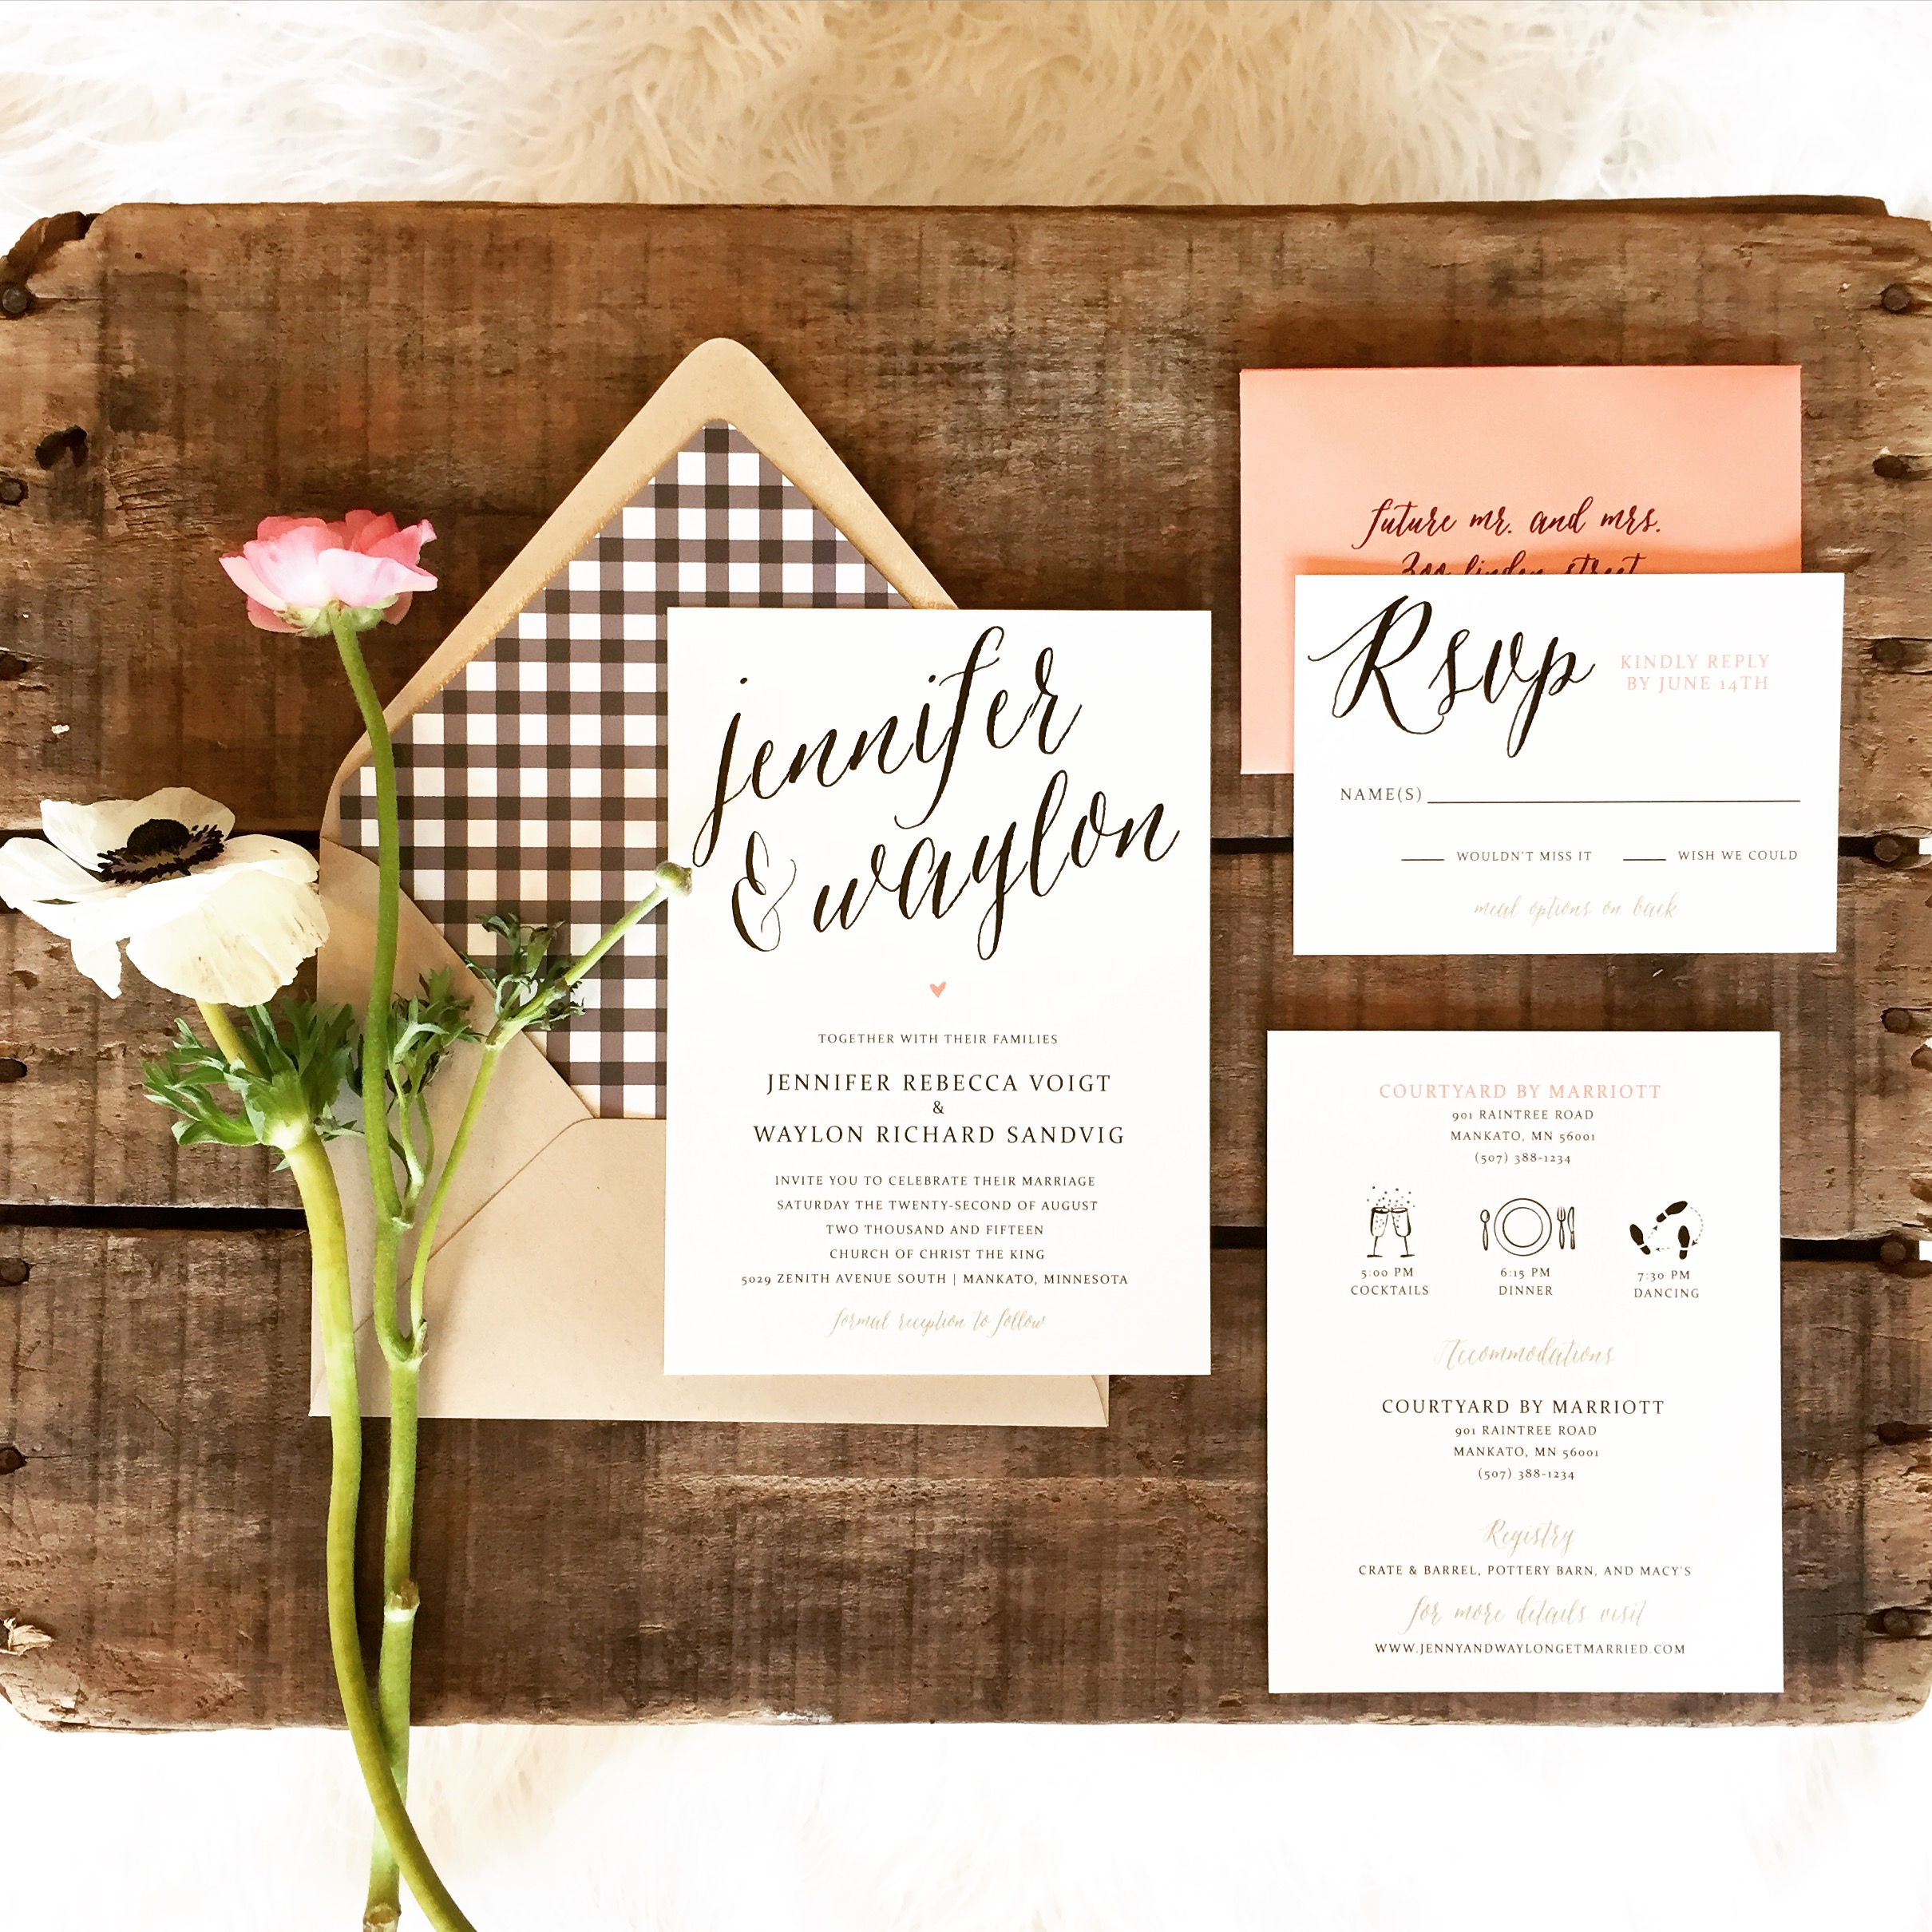 Jennifer and Waylon Invites